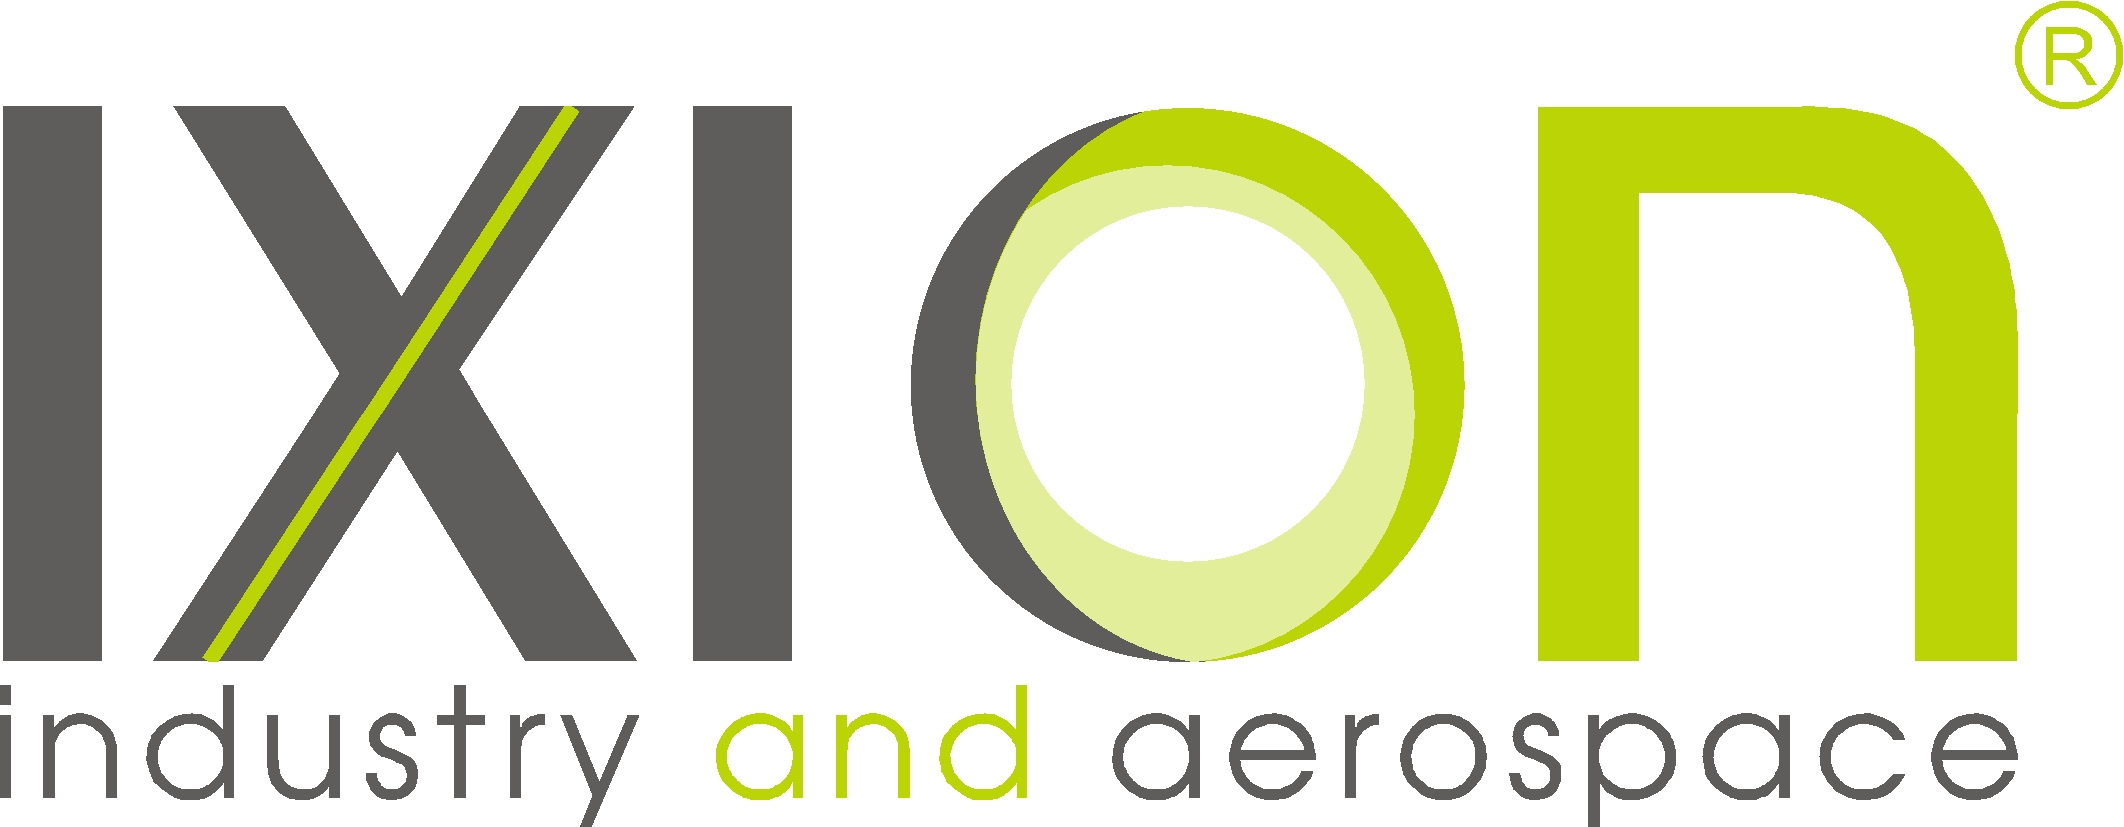 Logotipo Ixion Industry and Aerospace